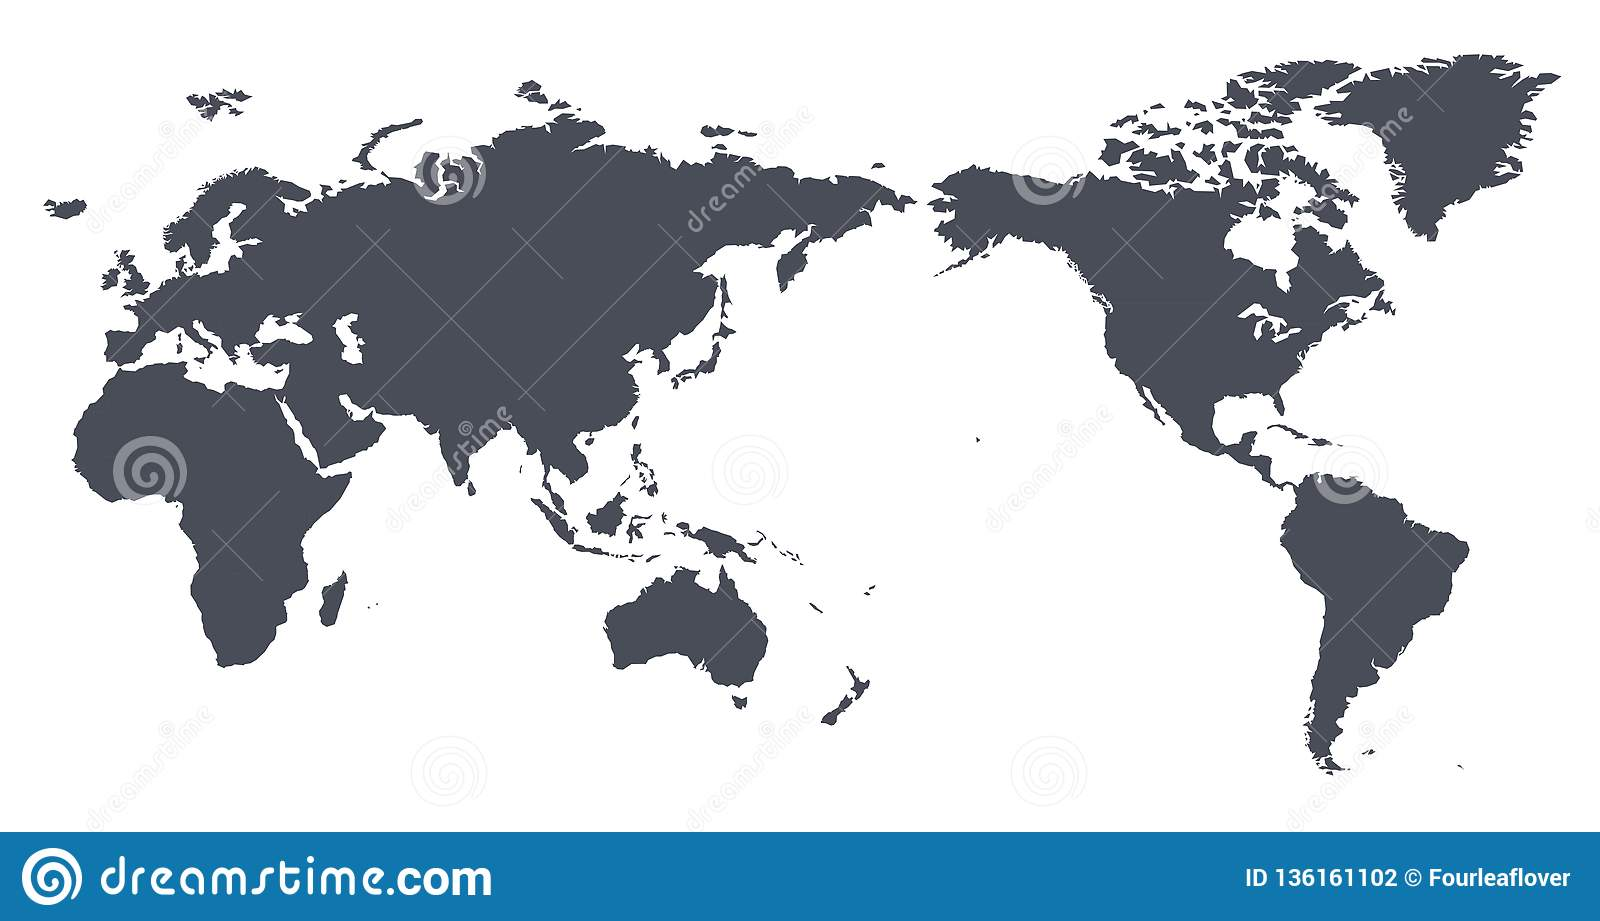 Picture of: Asia Pacific Map Stock Illustrations 4 900 Asia Pacific Map Stock Illustrations Vectors Clipart Dreamstime